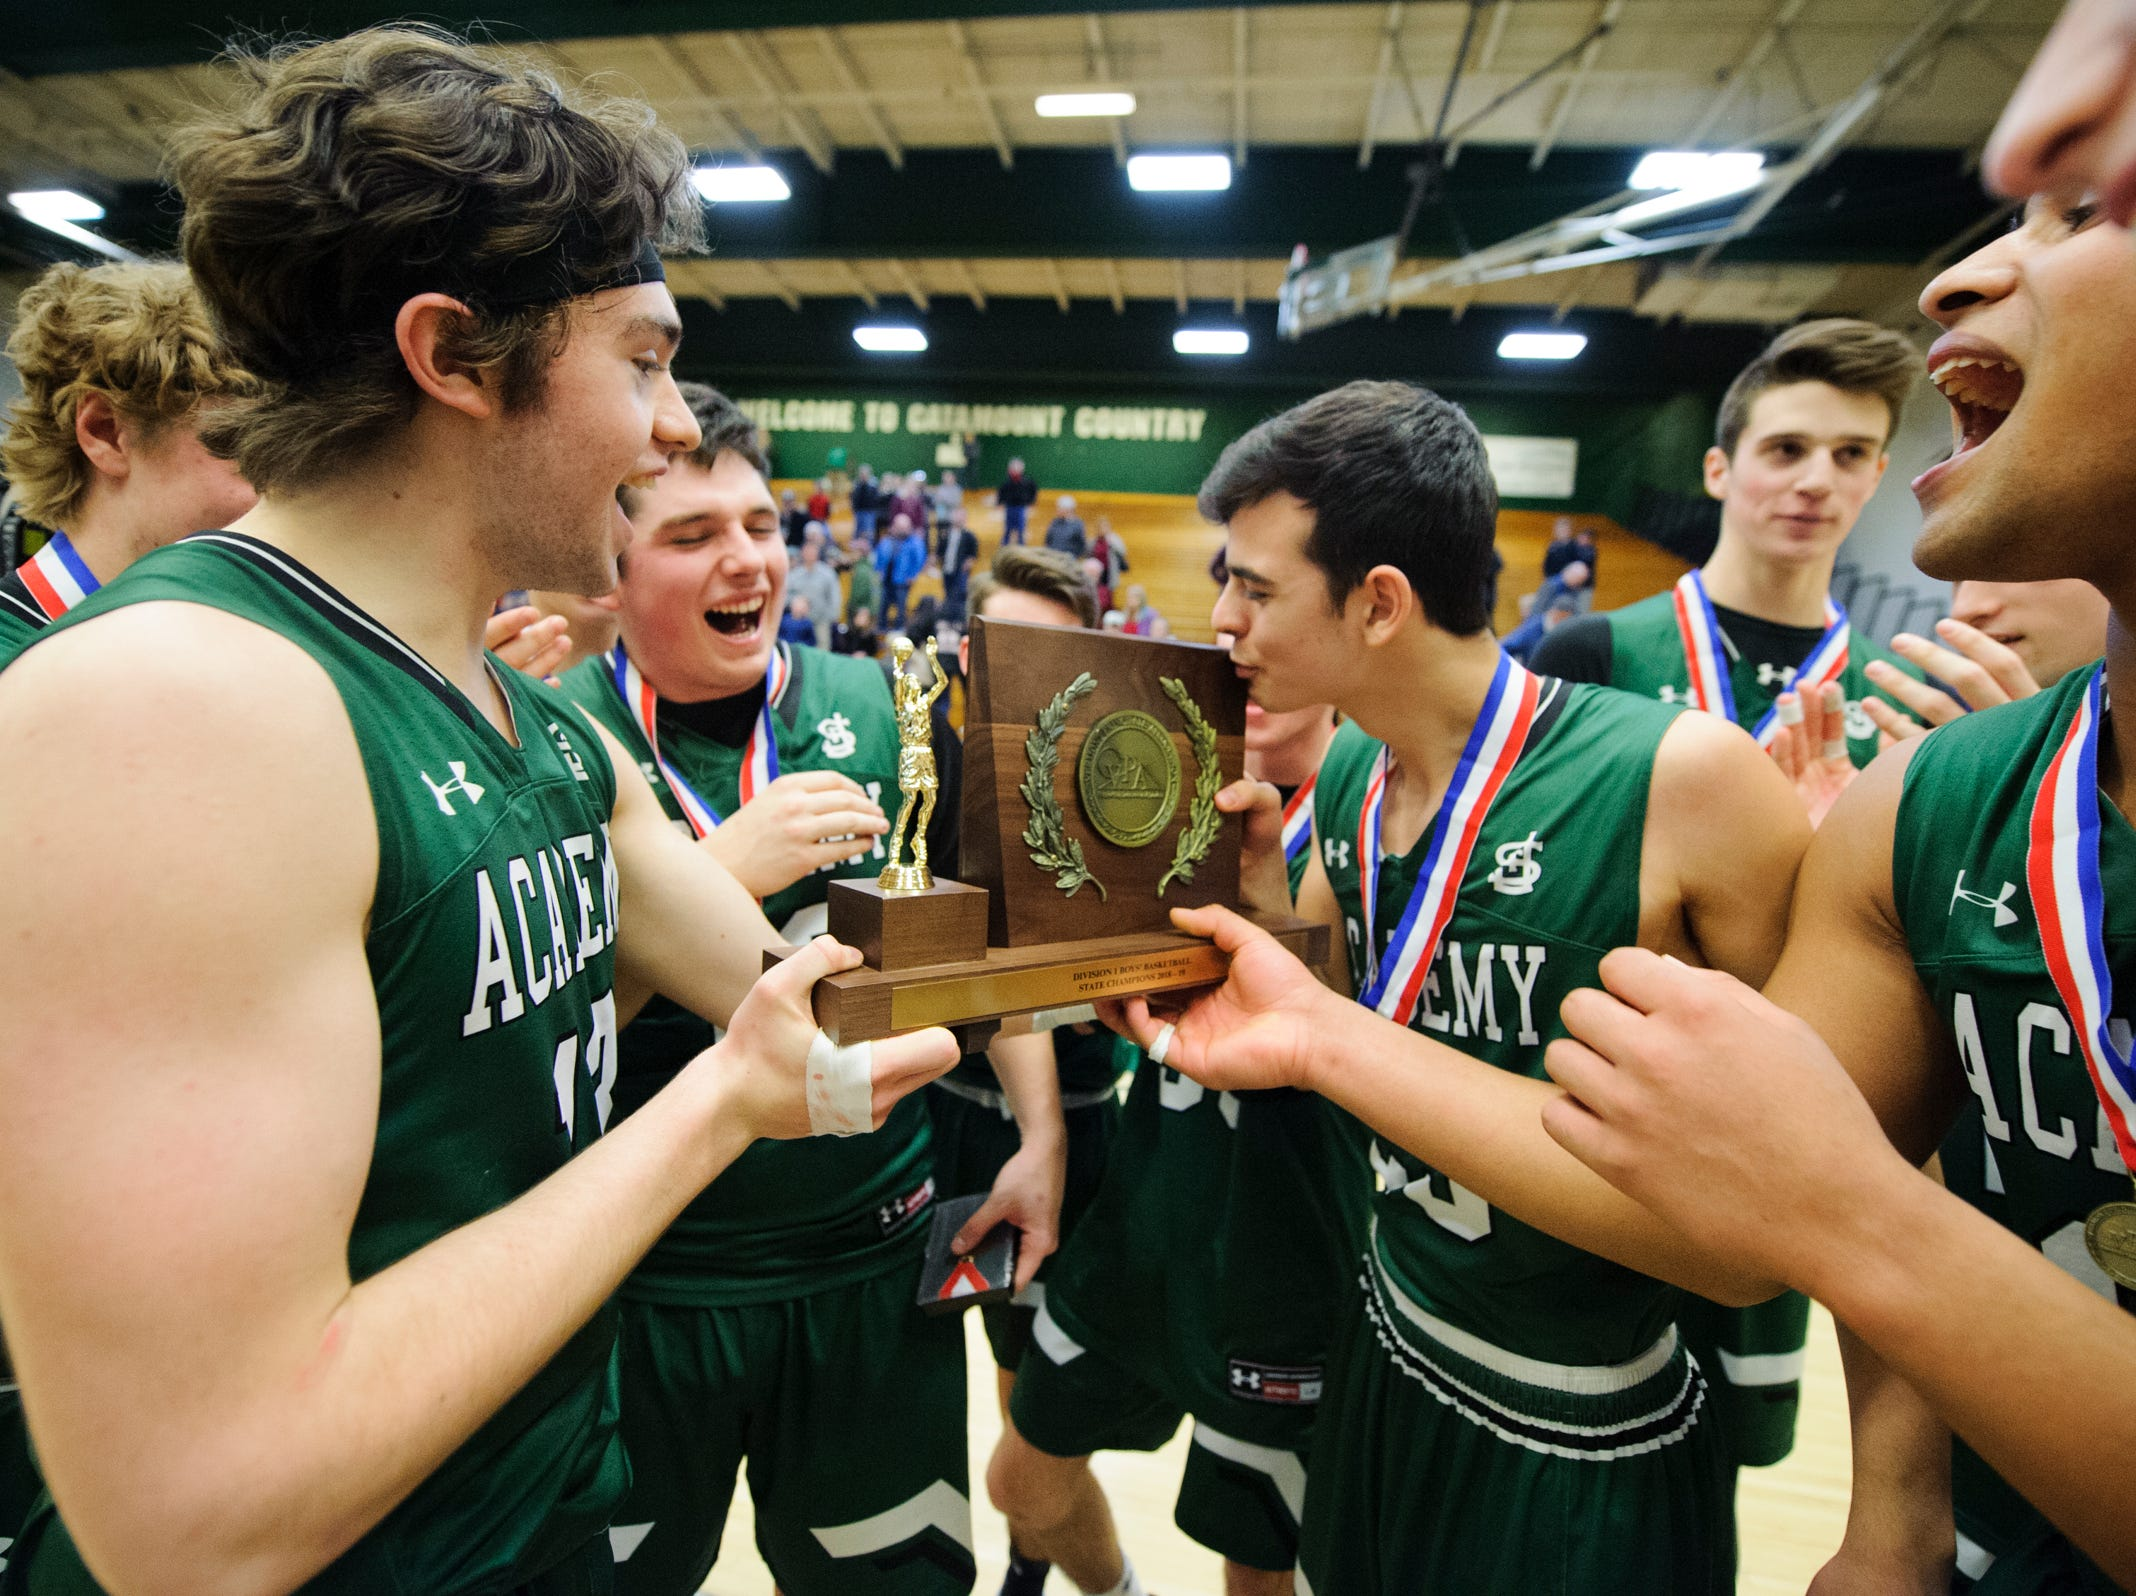 St. Johnsbury celebrates with the championship trophy during the DI boys basketball championship game between the St. Johnsbury Hilltoppers and the Rutland Raiders at Patrick Gym on Sunday afternoon March 17, 2019 in Burlington, Vermont.